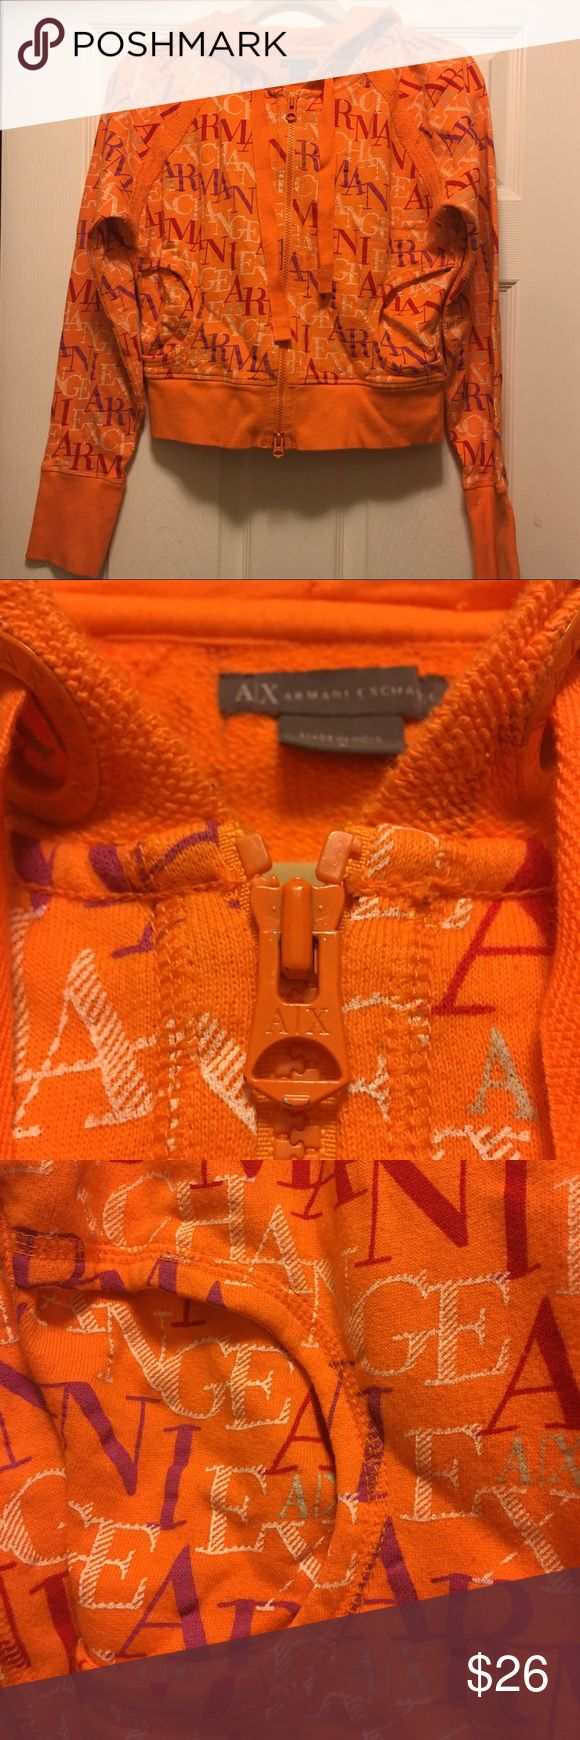 Armani Zip up hoodie Orange zip up hoodie, crop, with Armani in red white and purple colors. Size Large Worn a few times Great condition, a very tiny amount of orange rubbed off zipper, shown in picture.  Otherwise excellent condition. Armani Exchange Jackets & Coats Utility Jackets